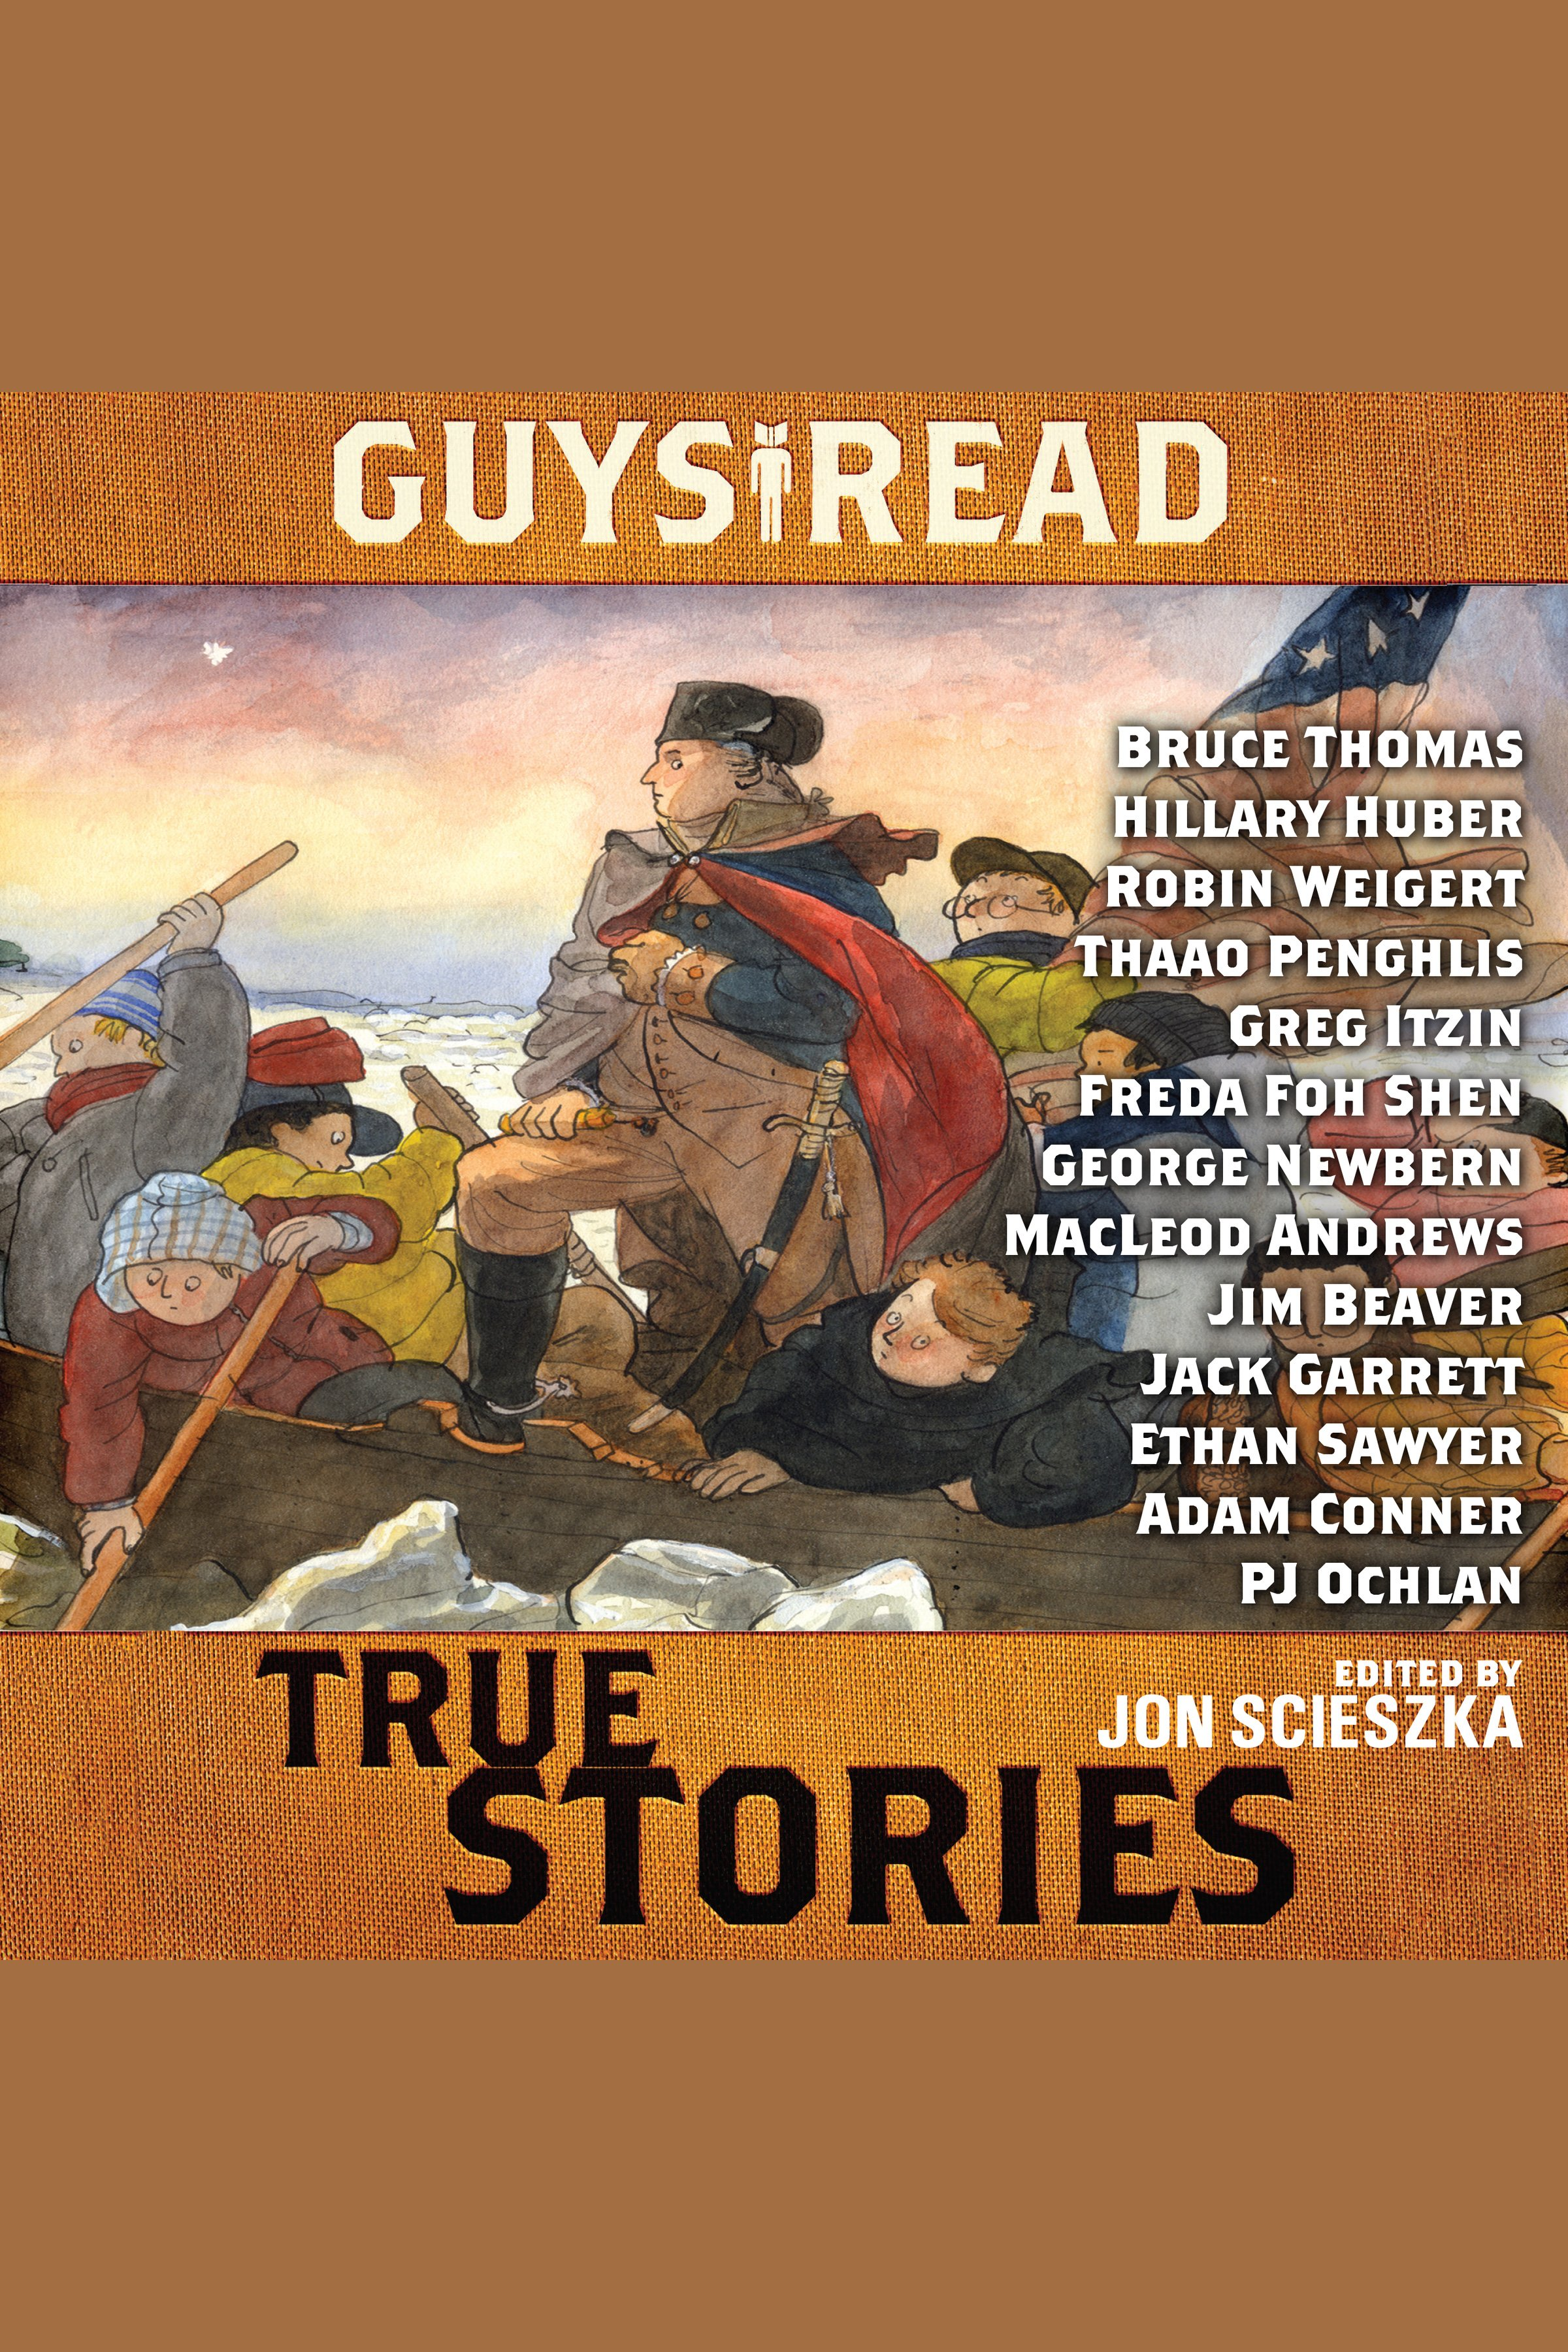 Guys read true stories cover image